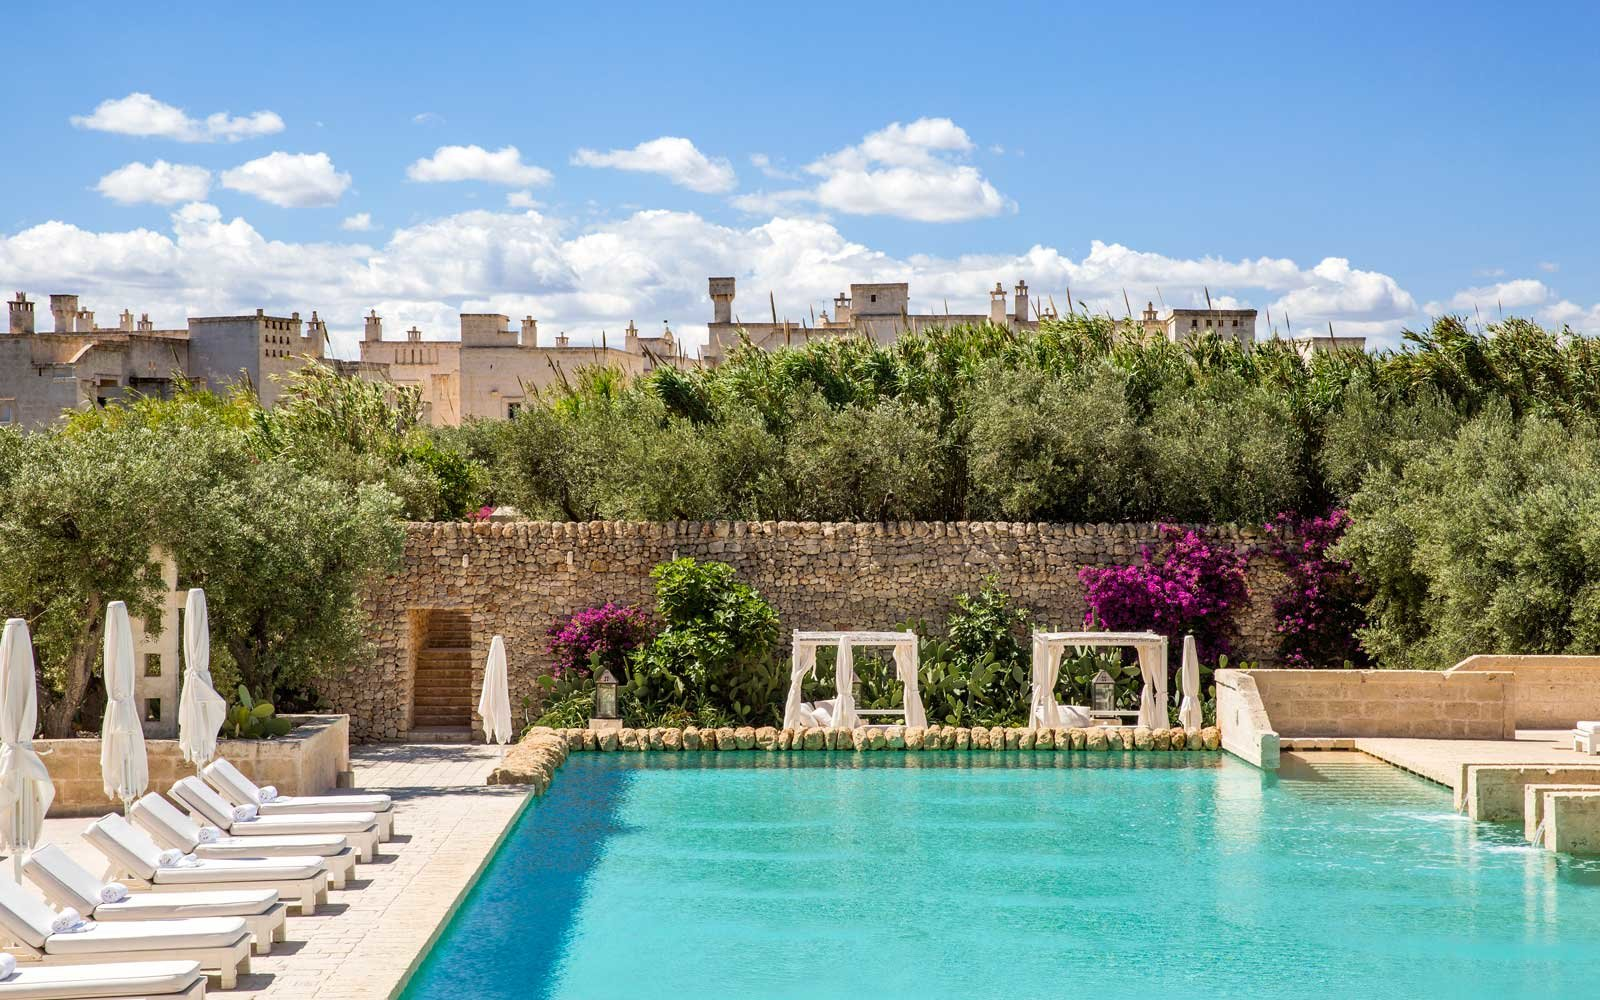 Pool at the Borgo Egnazia hotel in Italy